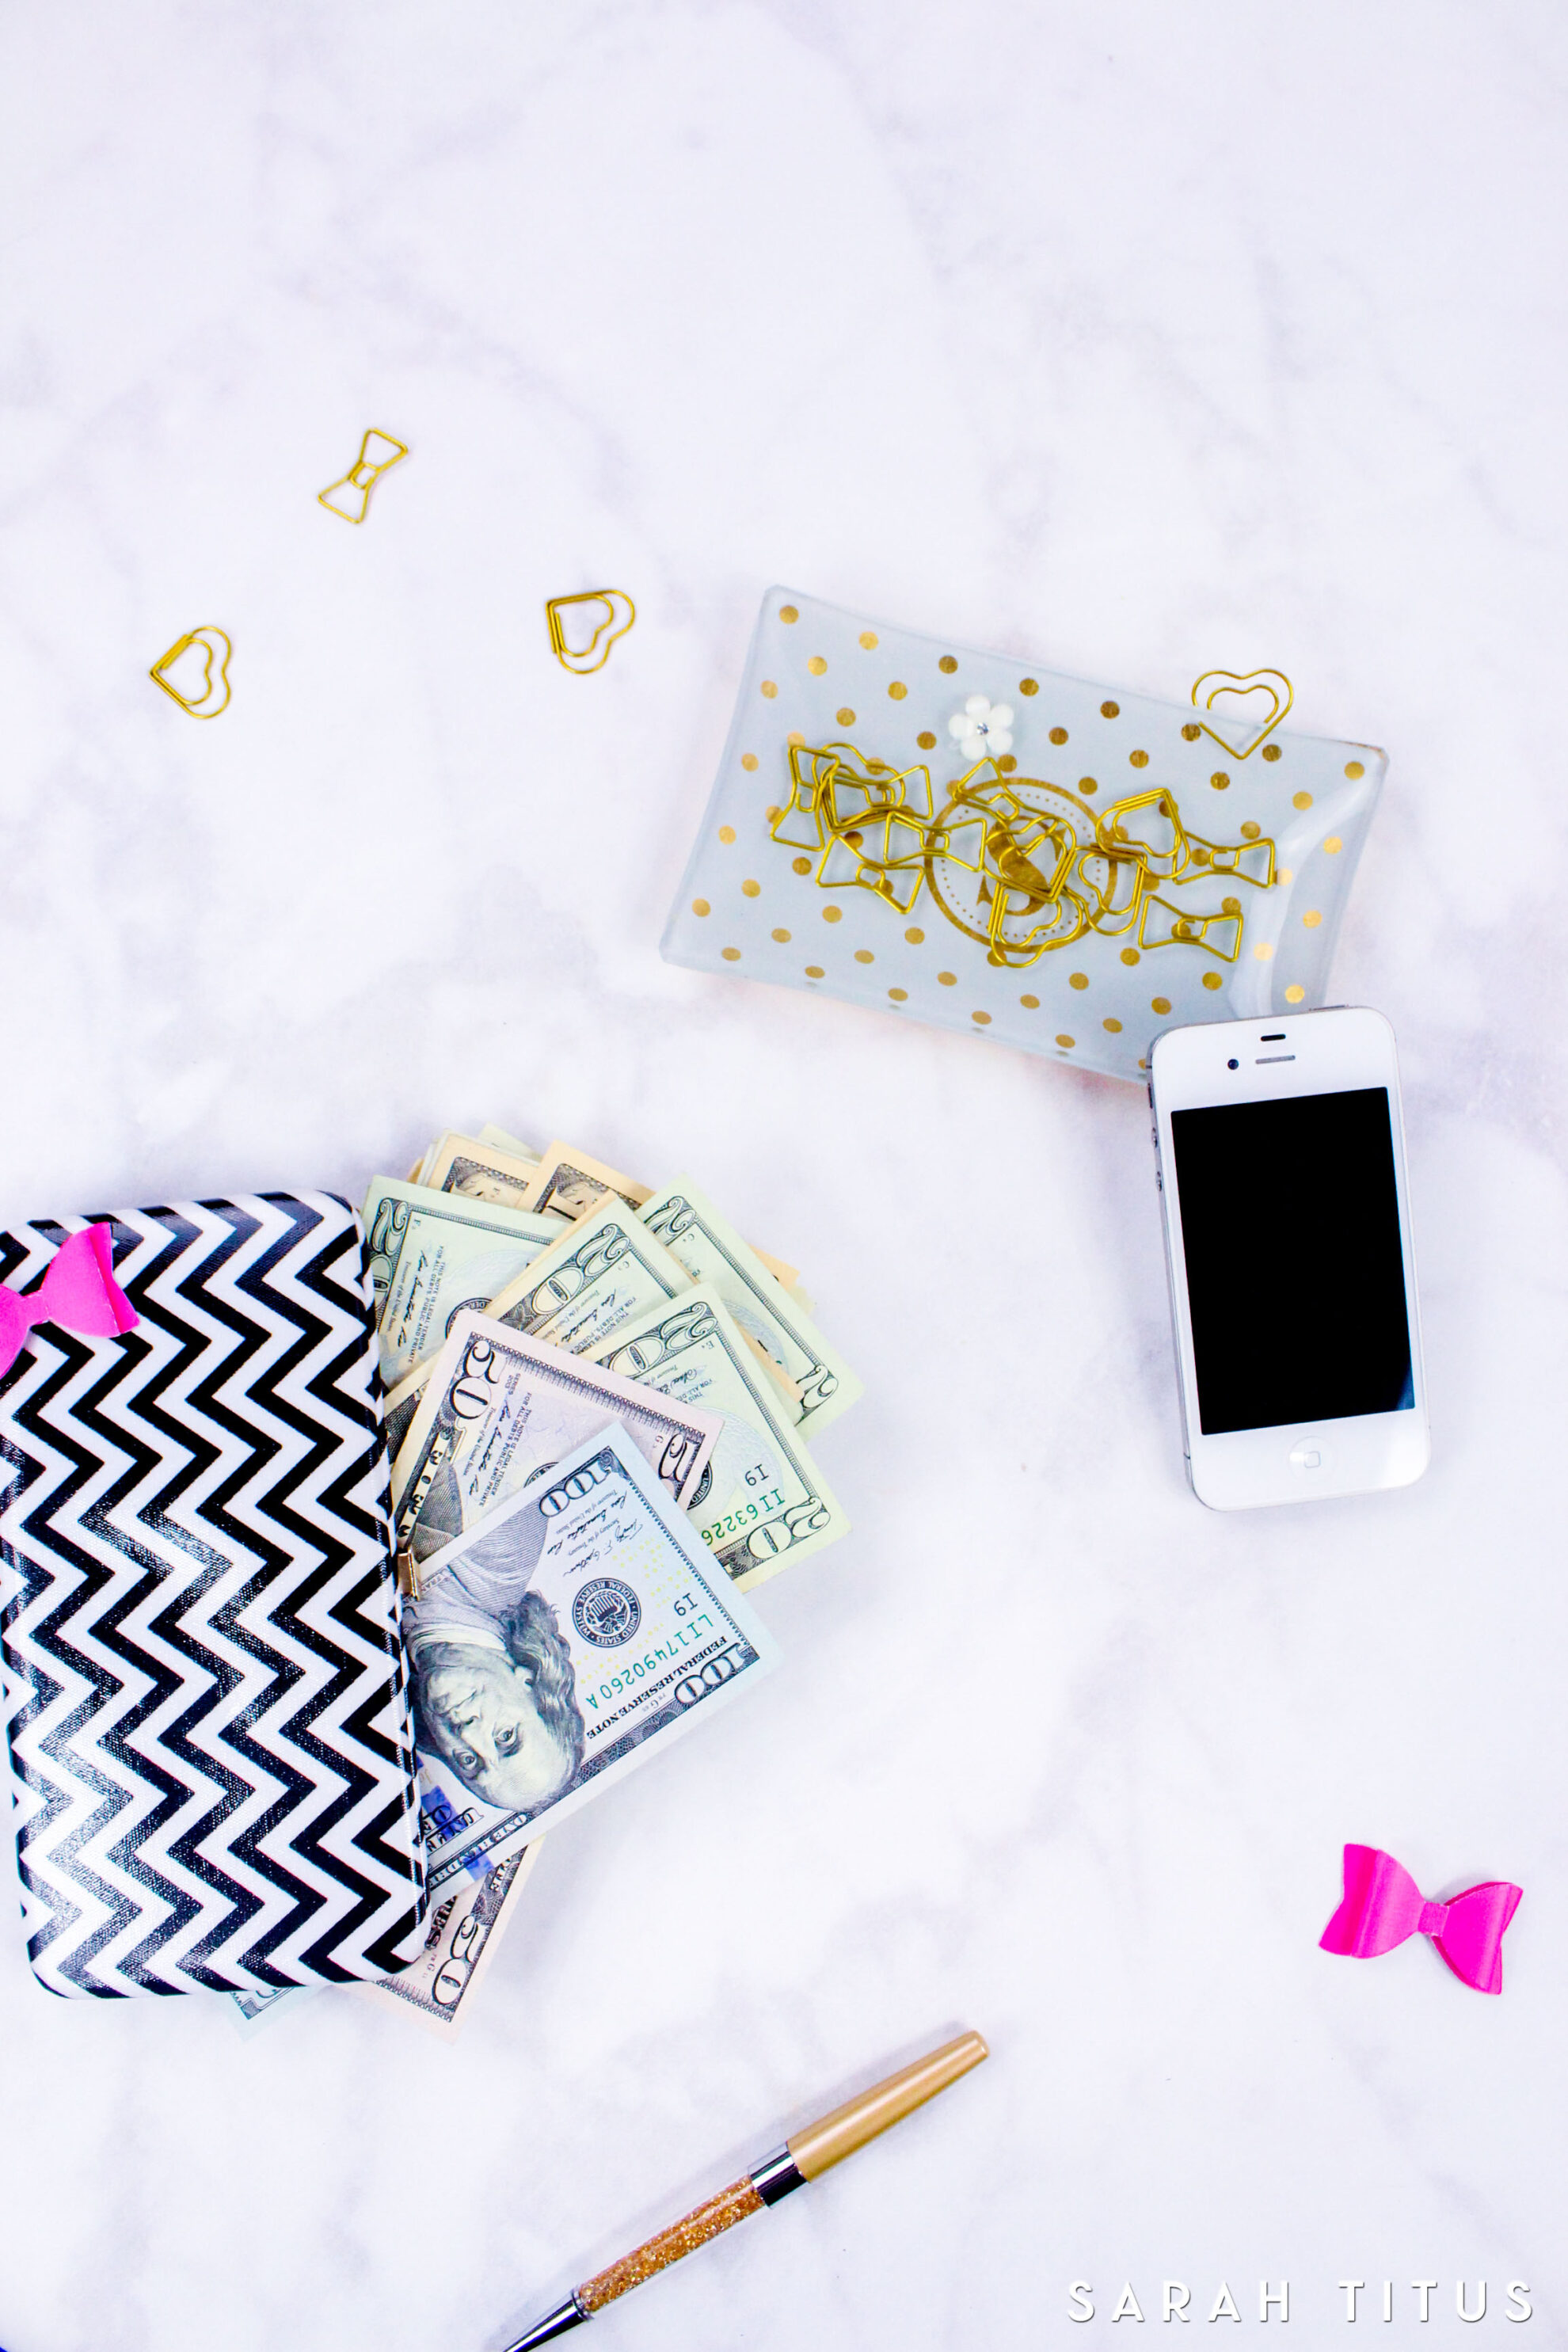 I've been making money online for 18 years now. While there are lots of ways to go about it, here are 7 ways I made money last month...and you can too!